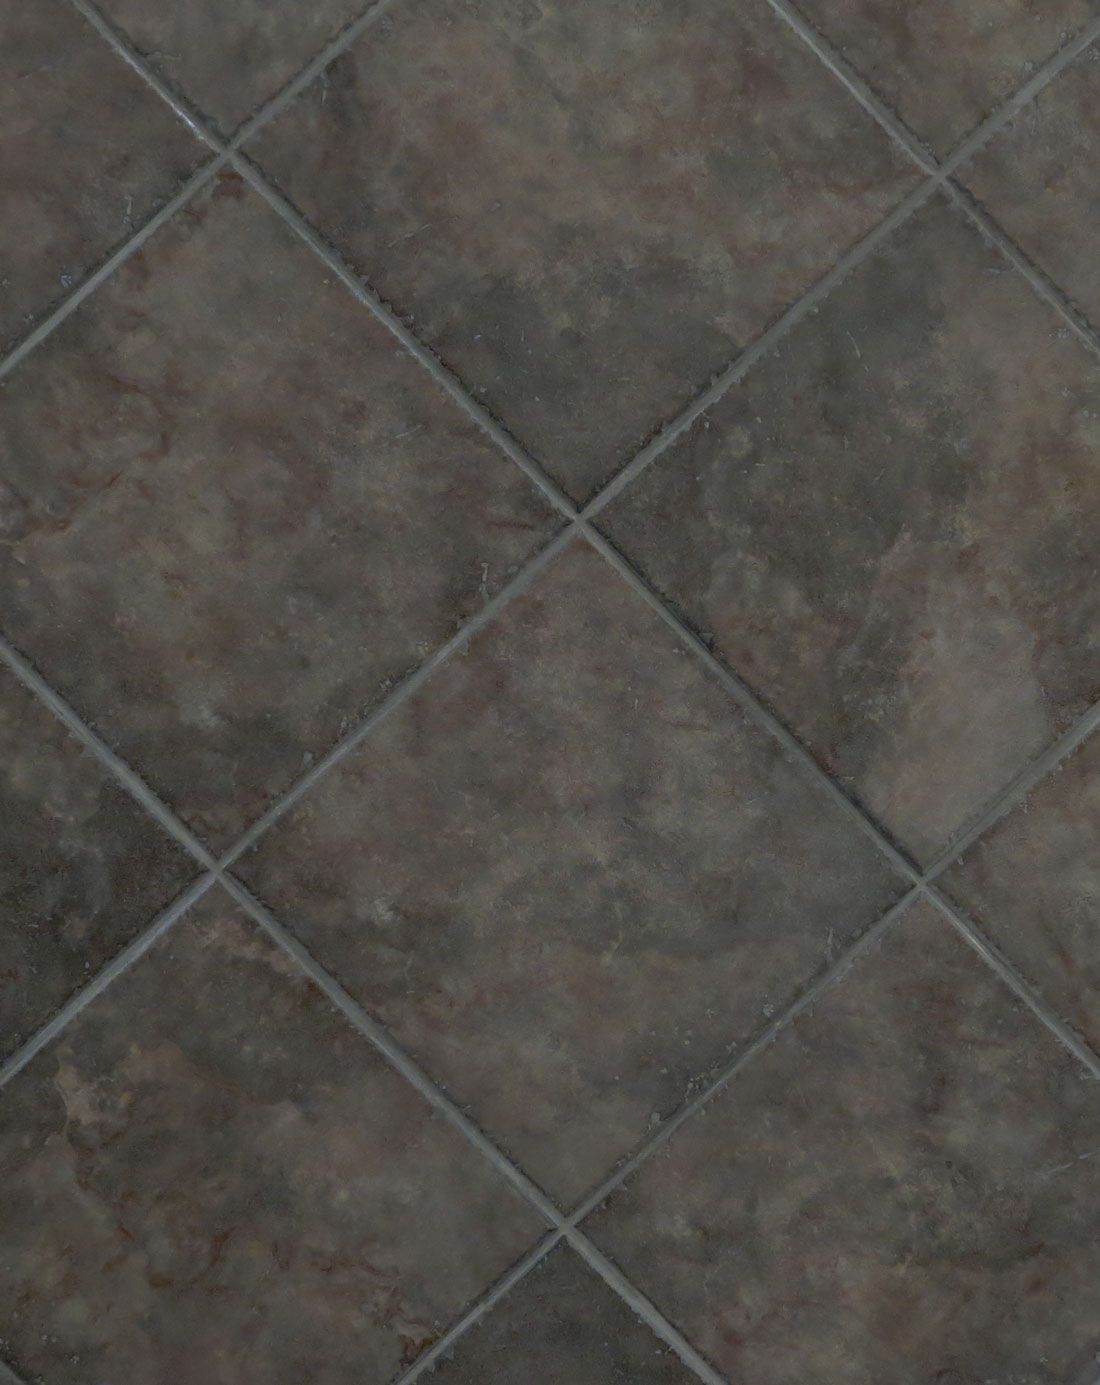 Kitchen floor tile samples china suppliers ceramic kitchen for Bathroom decor and tiles midland